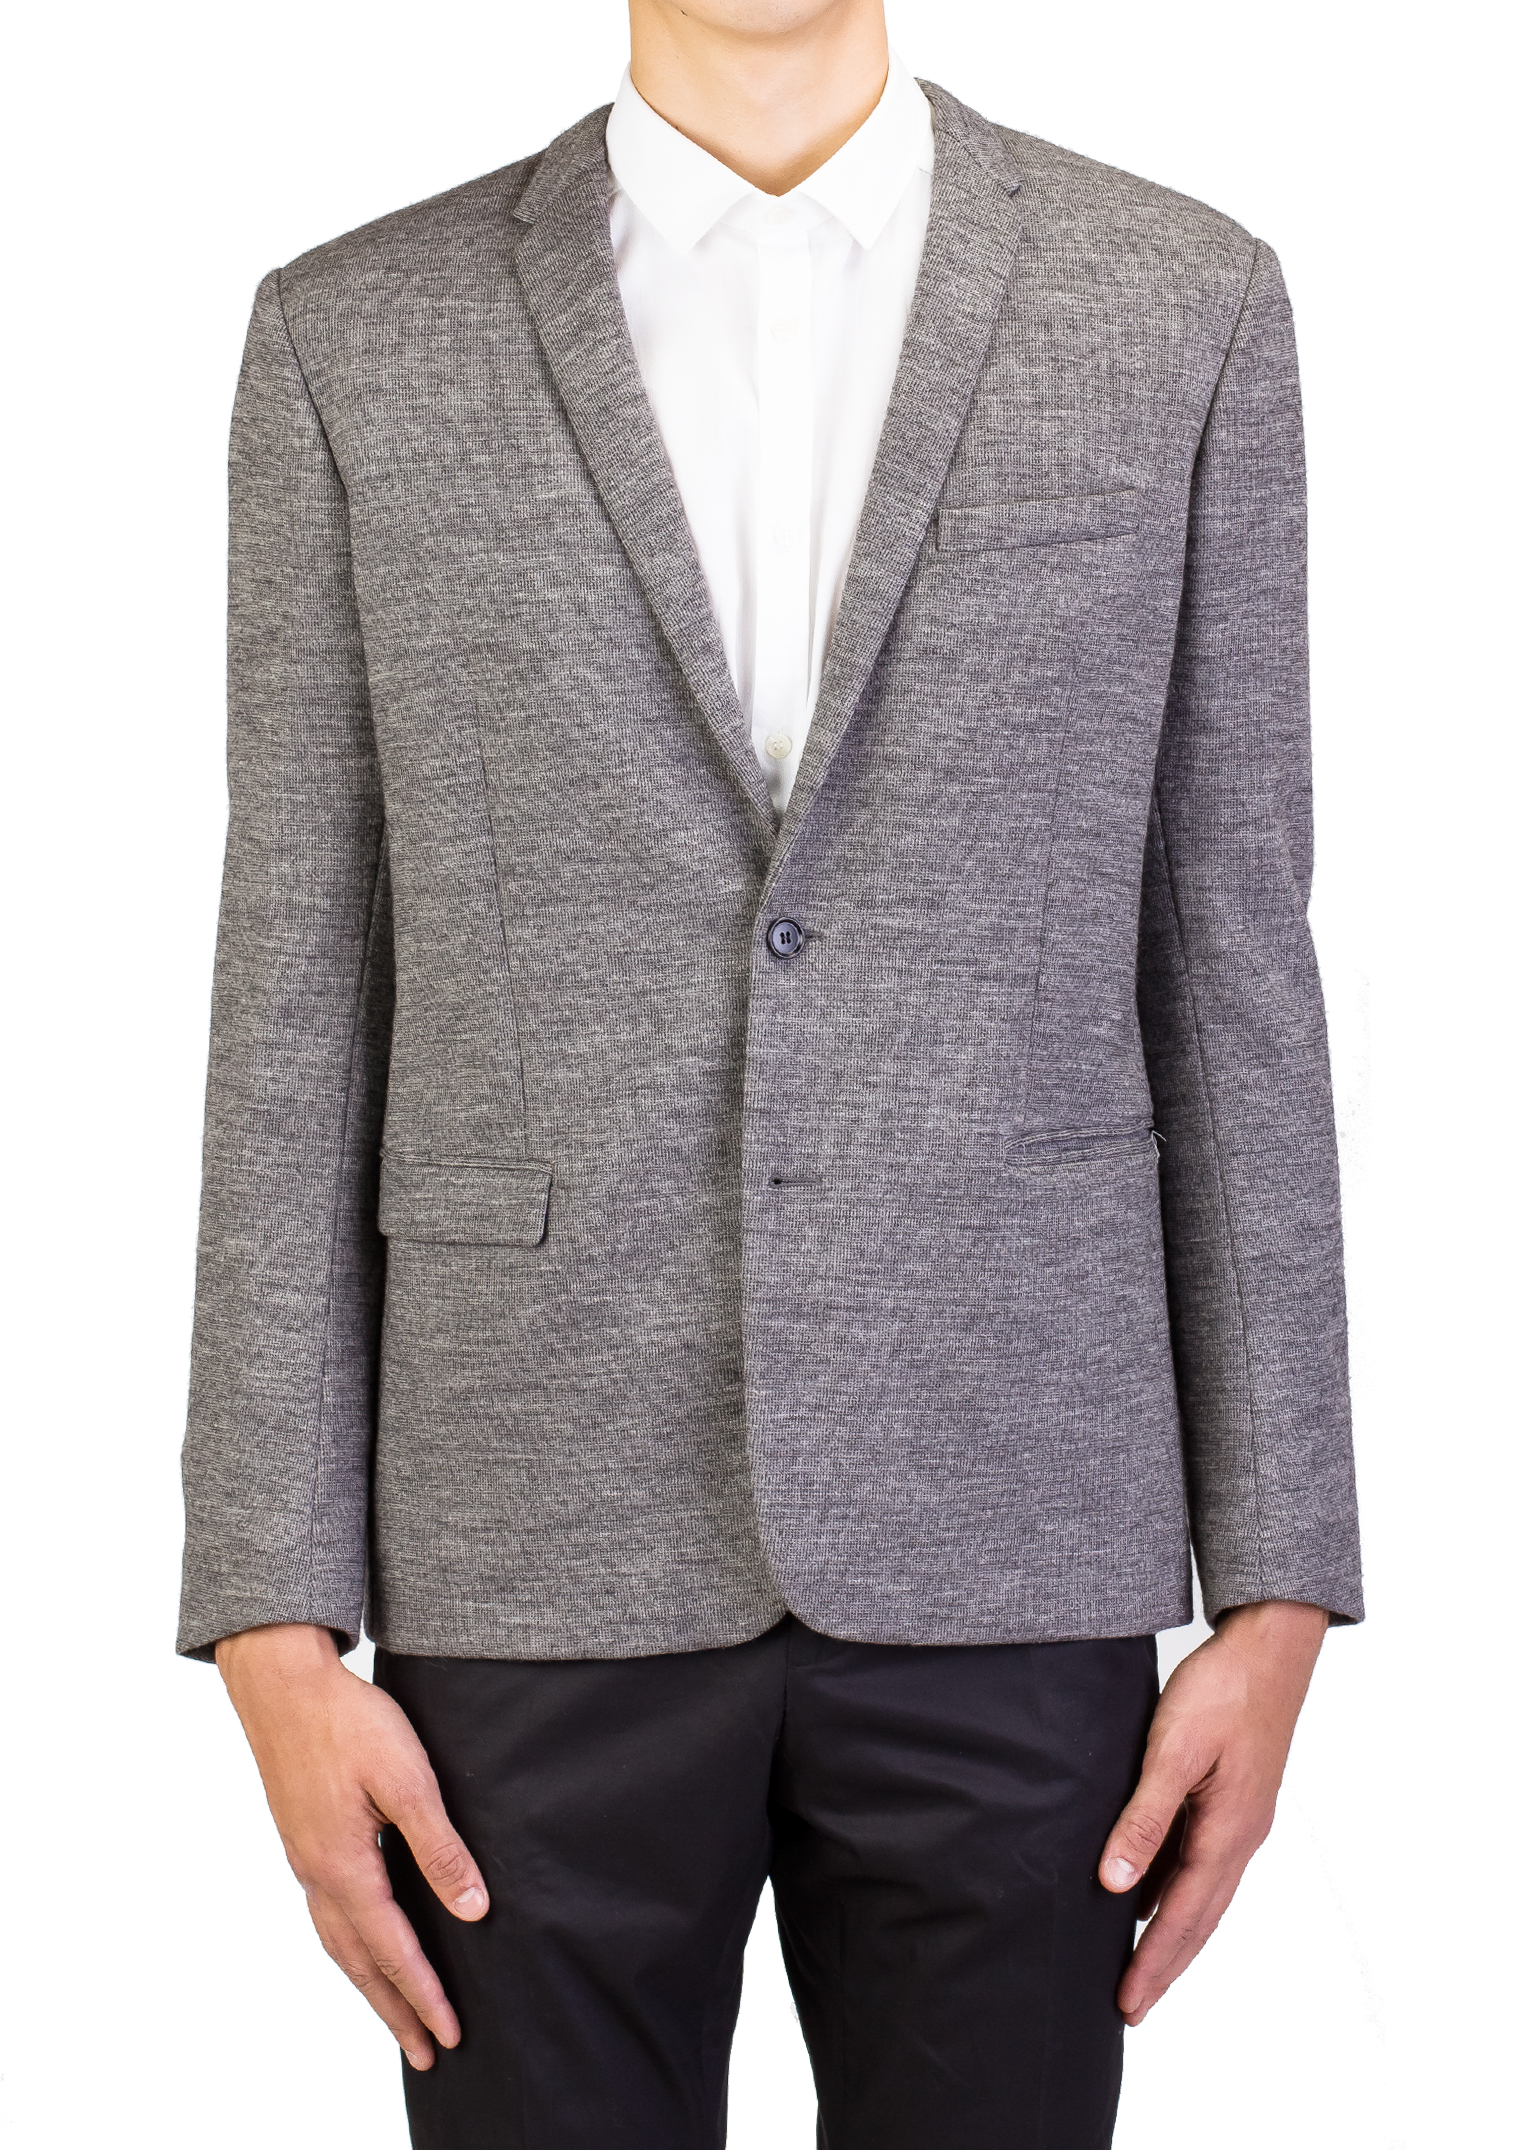 Dior Homme Men's Soft Virgin Wool Two-Button Sportscoat Jacket Grey by Dior